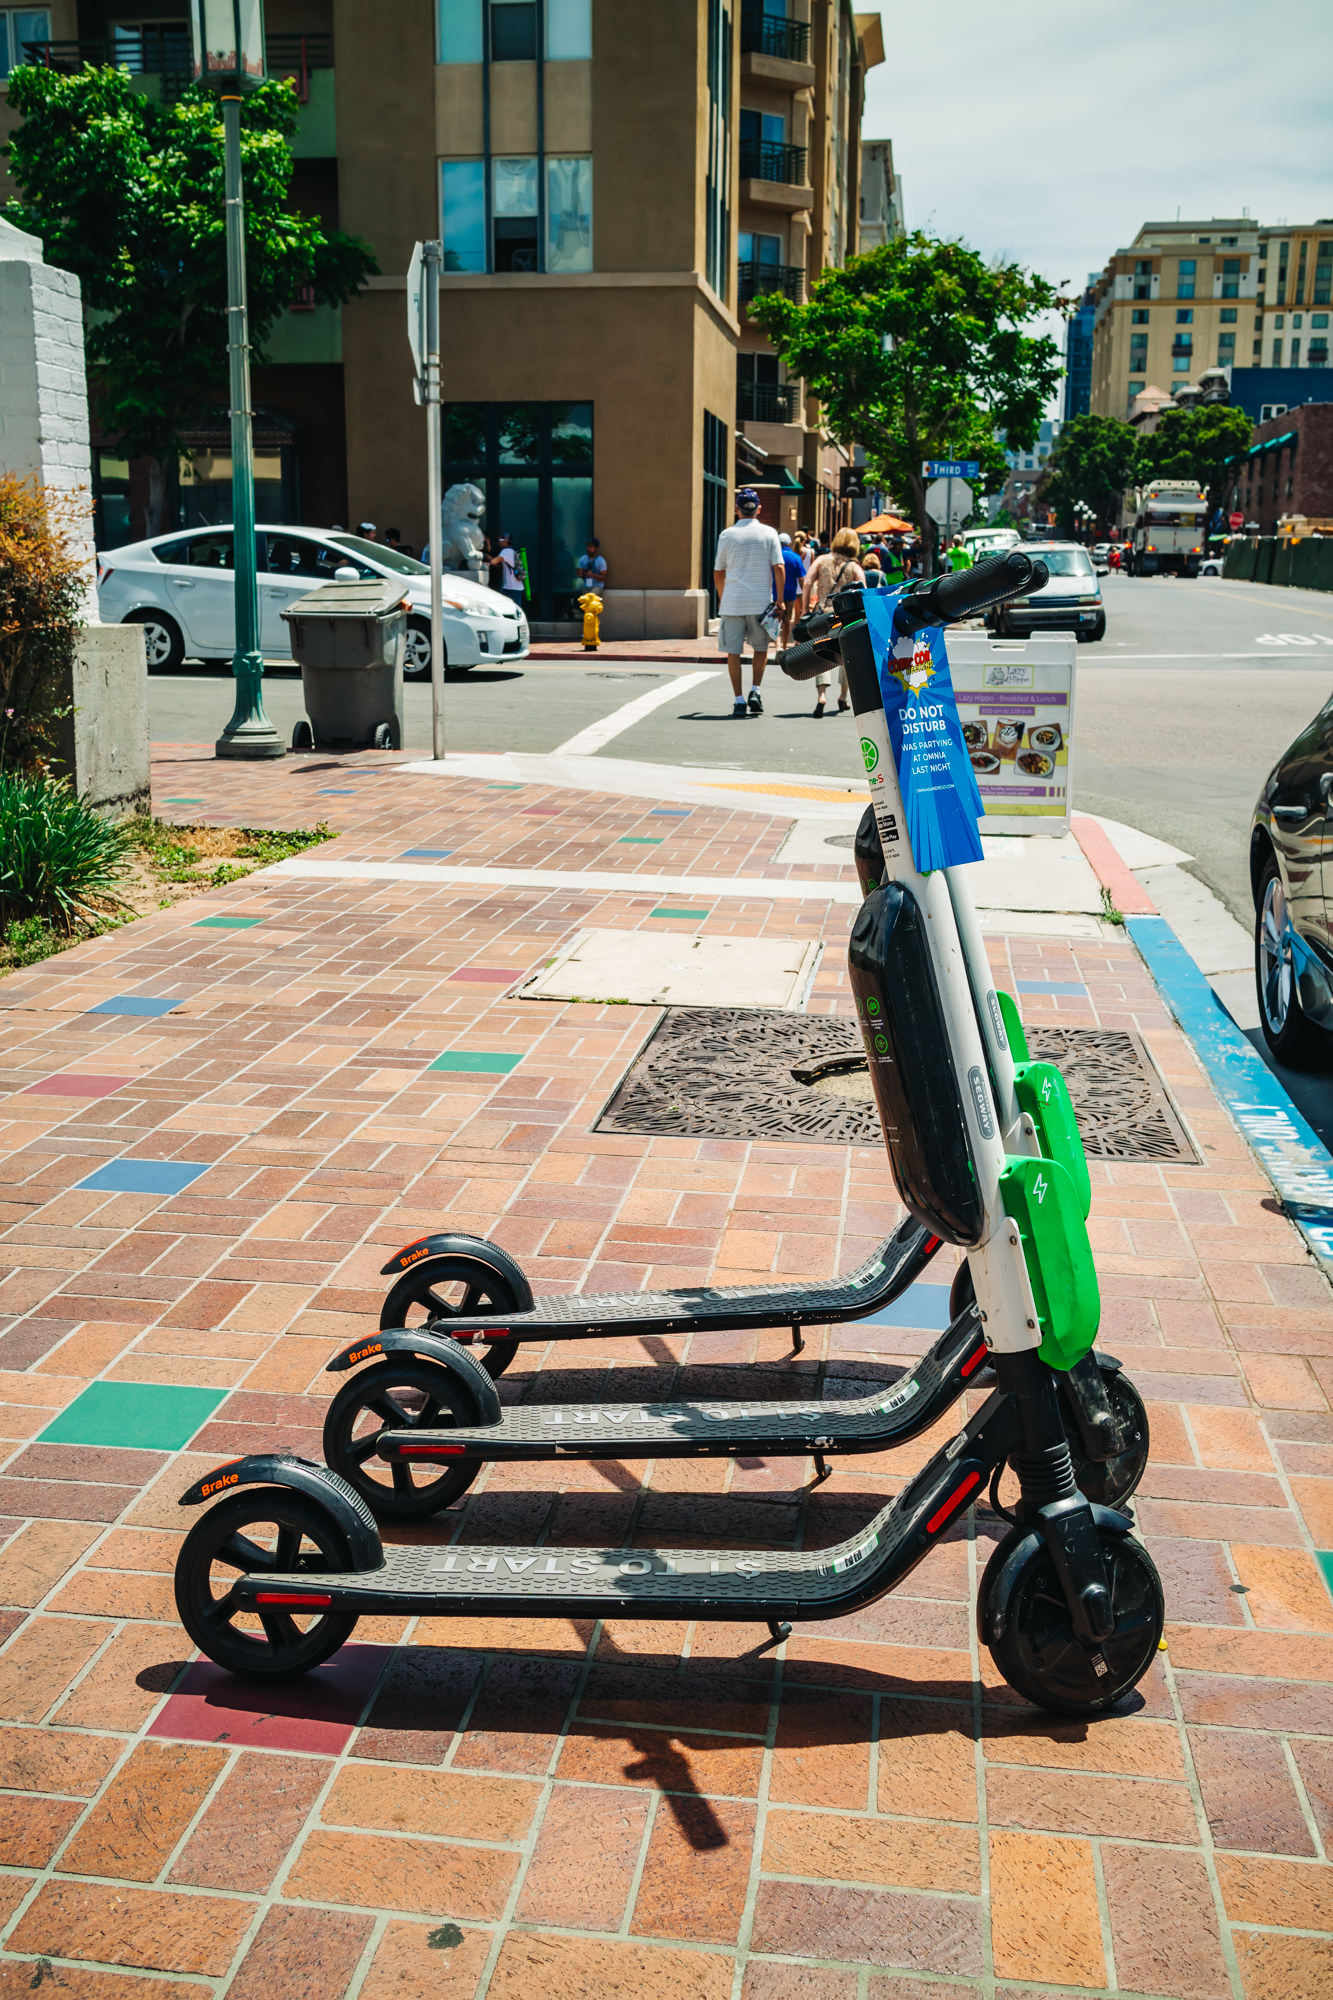 Rental scooters were everywhere